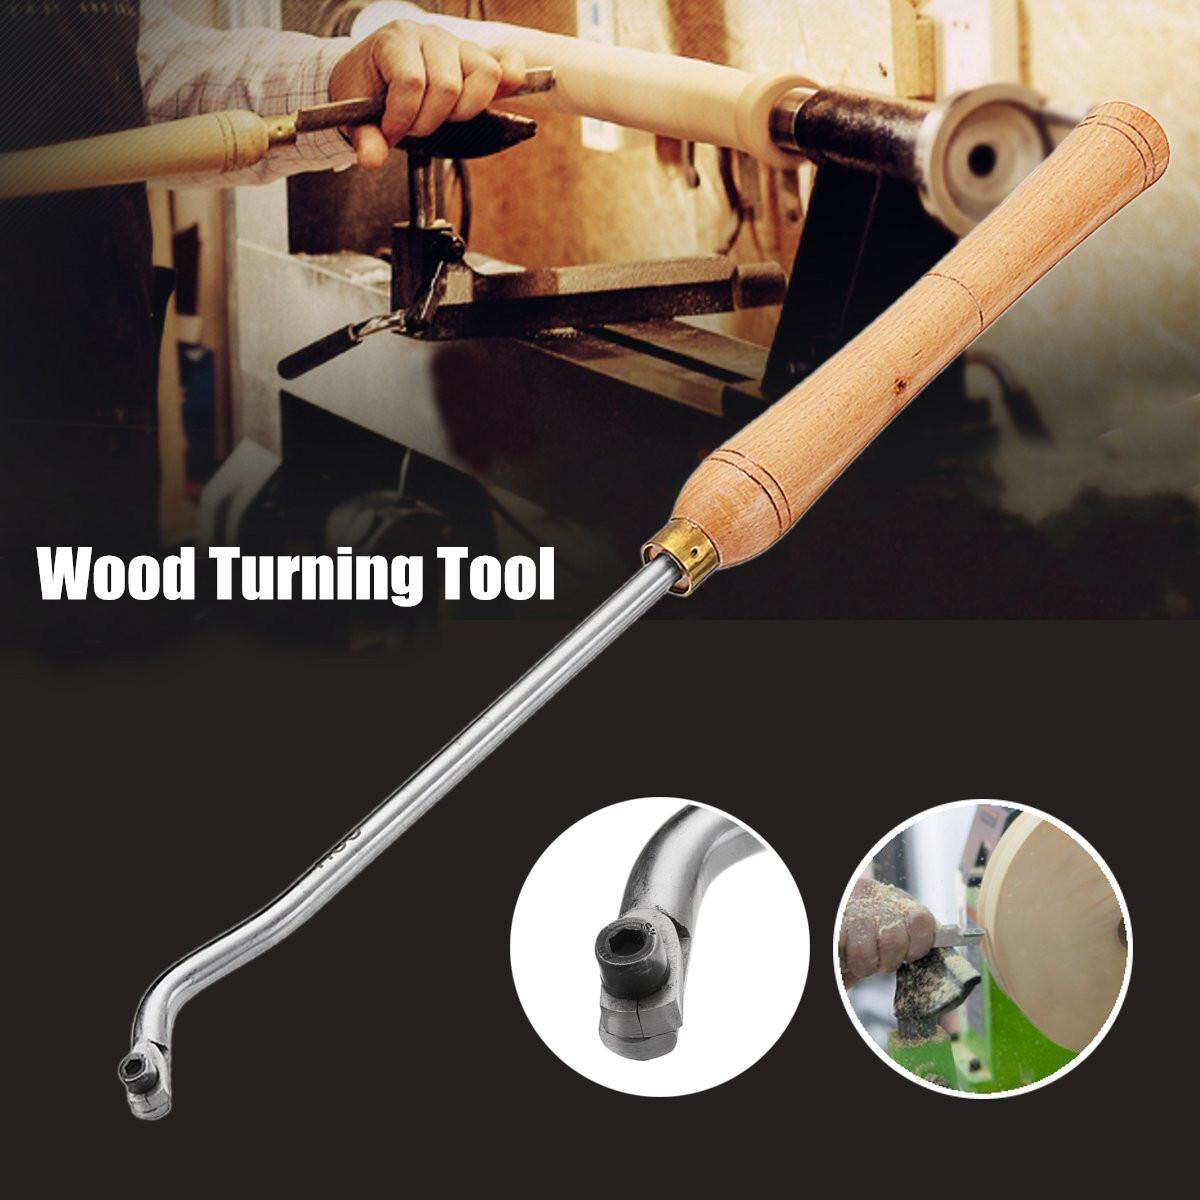 Wood Turning Tool High Speed Steel Wood Lathe Hollowing Out Hollowing Chisel